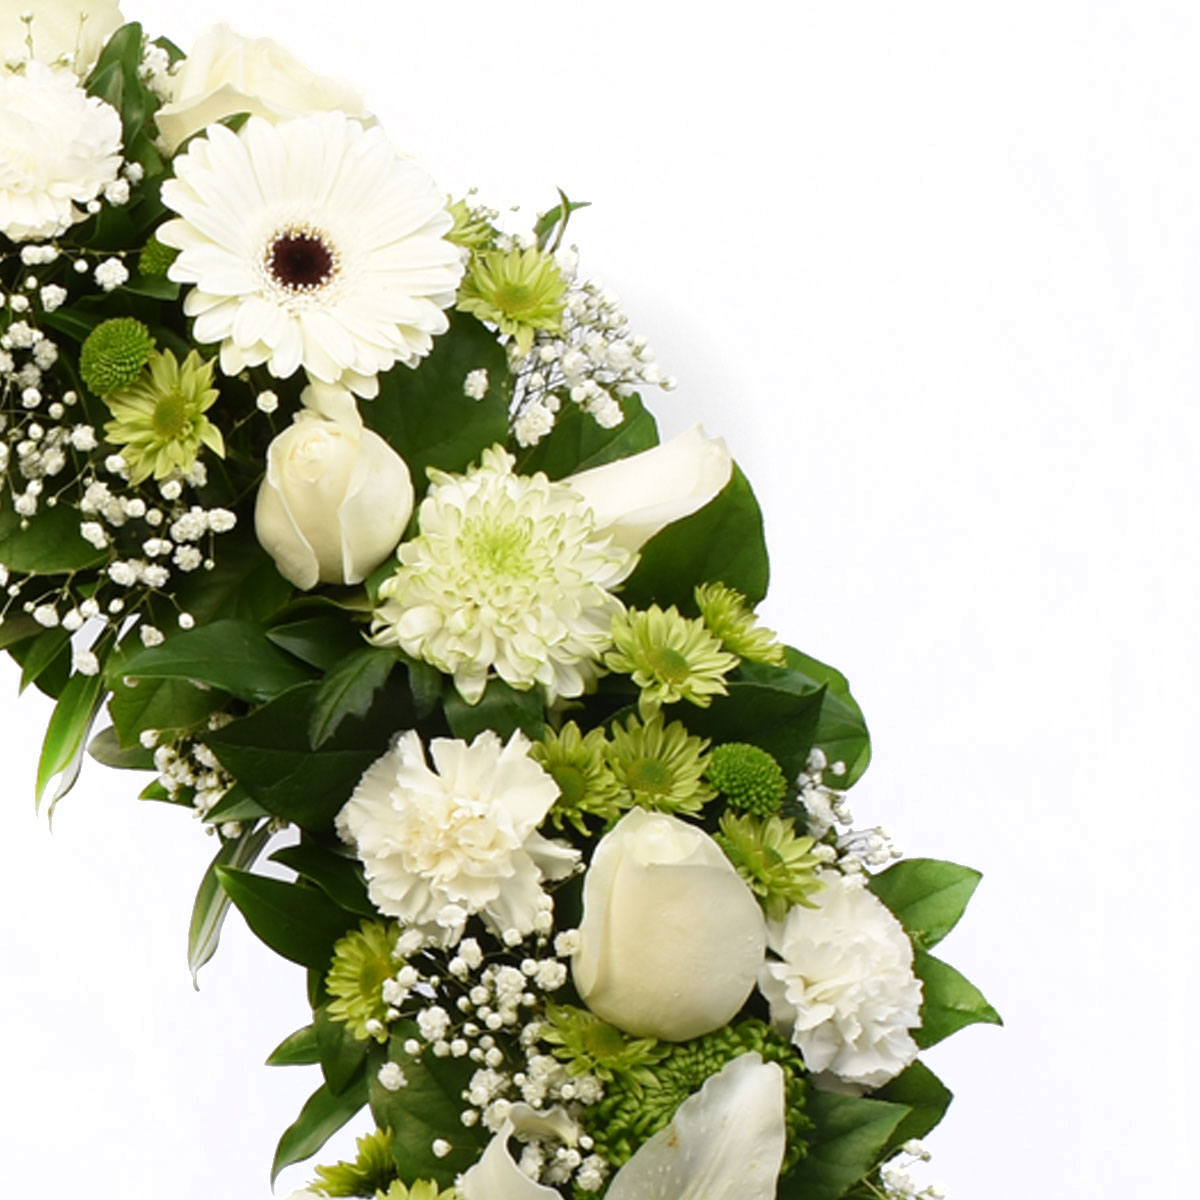 Sympathy wreath with roses, lillies and white gerberas